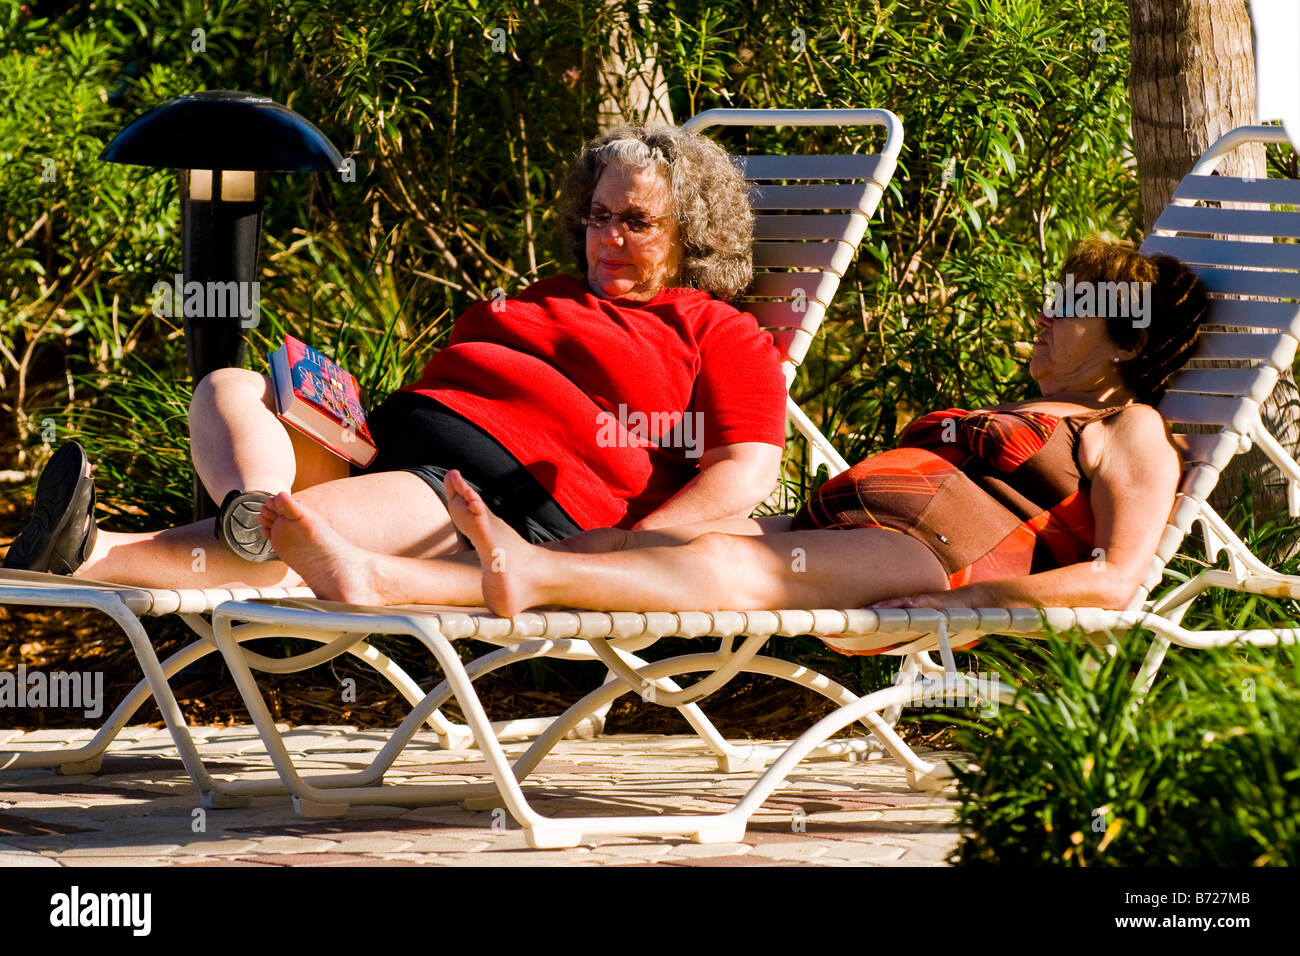 Palm Beach Shores , two middle aged women in sunglasses & bathing costume on sun loungers by pool - Stock Image